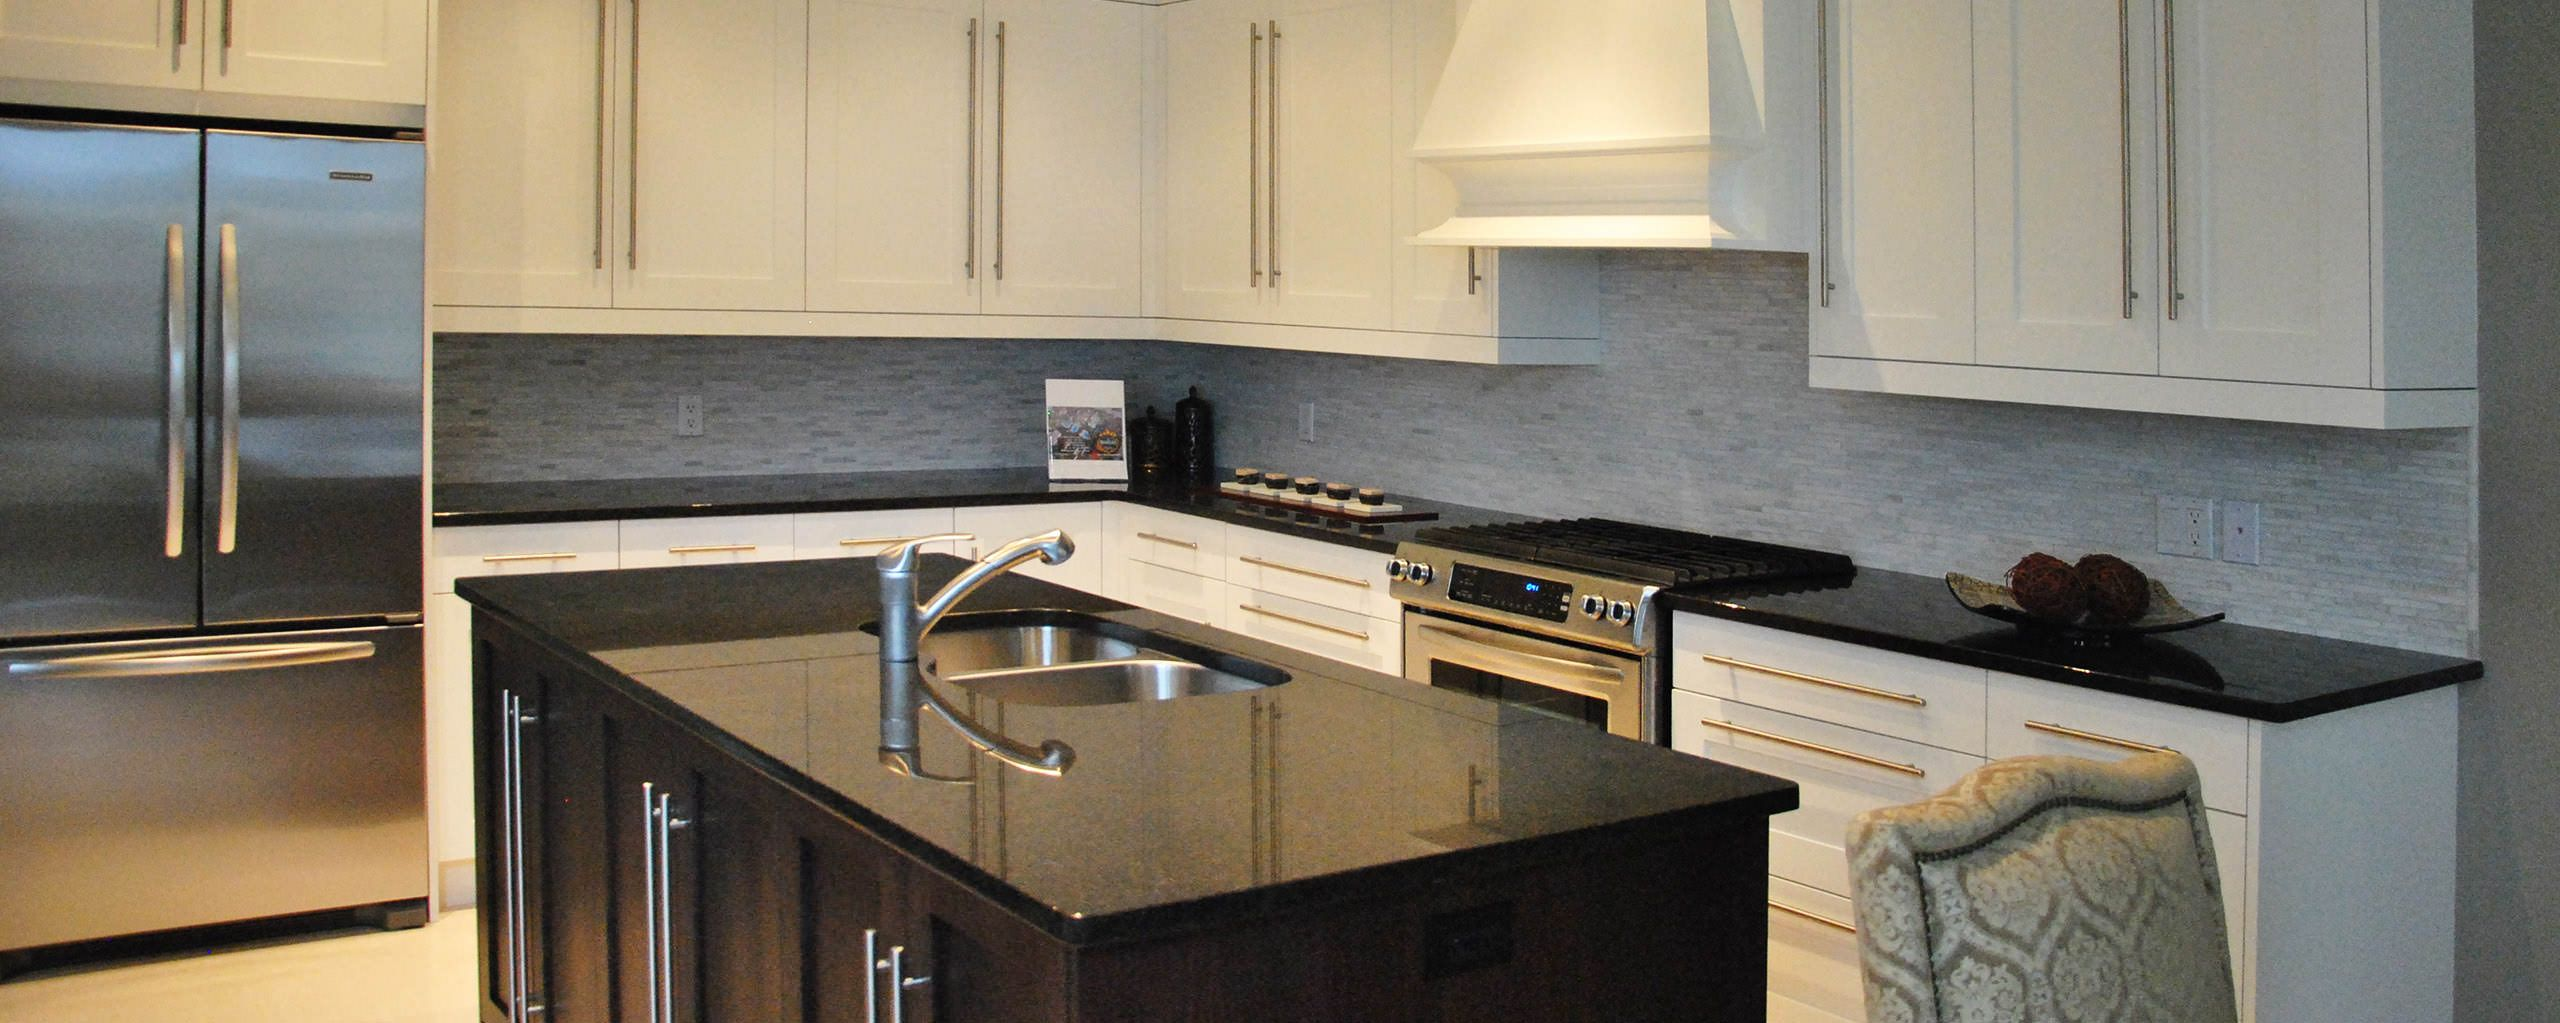 Bring Elegance Into Your Kitchen With Black Granite Countertops Stunning Kitchen And Bath Design Center Decorating Inspiration